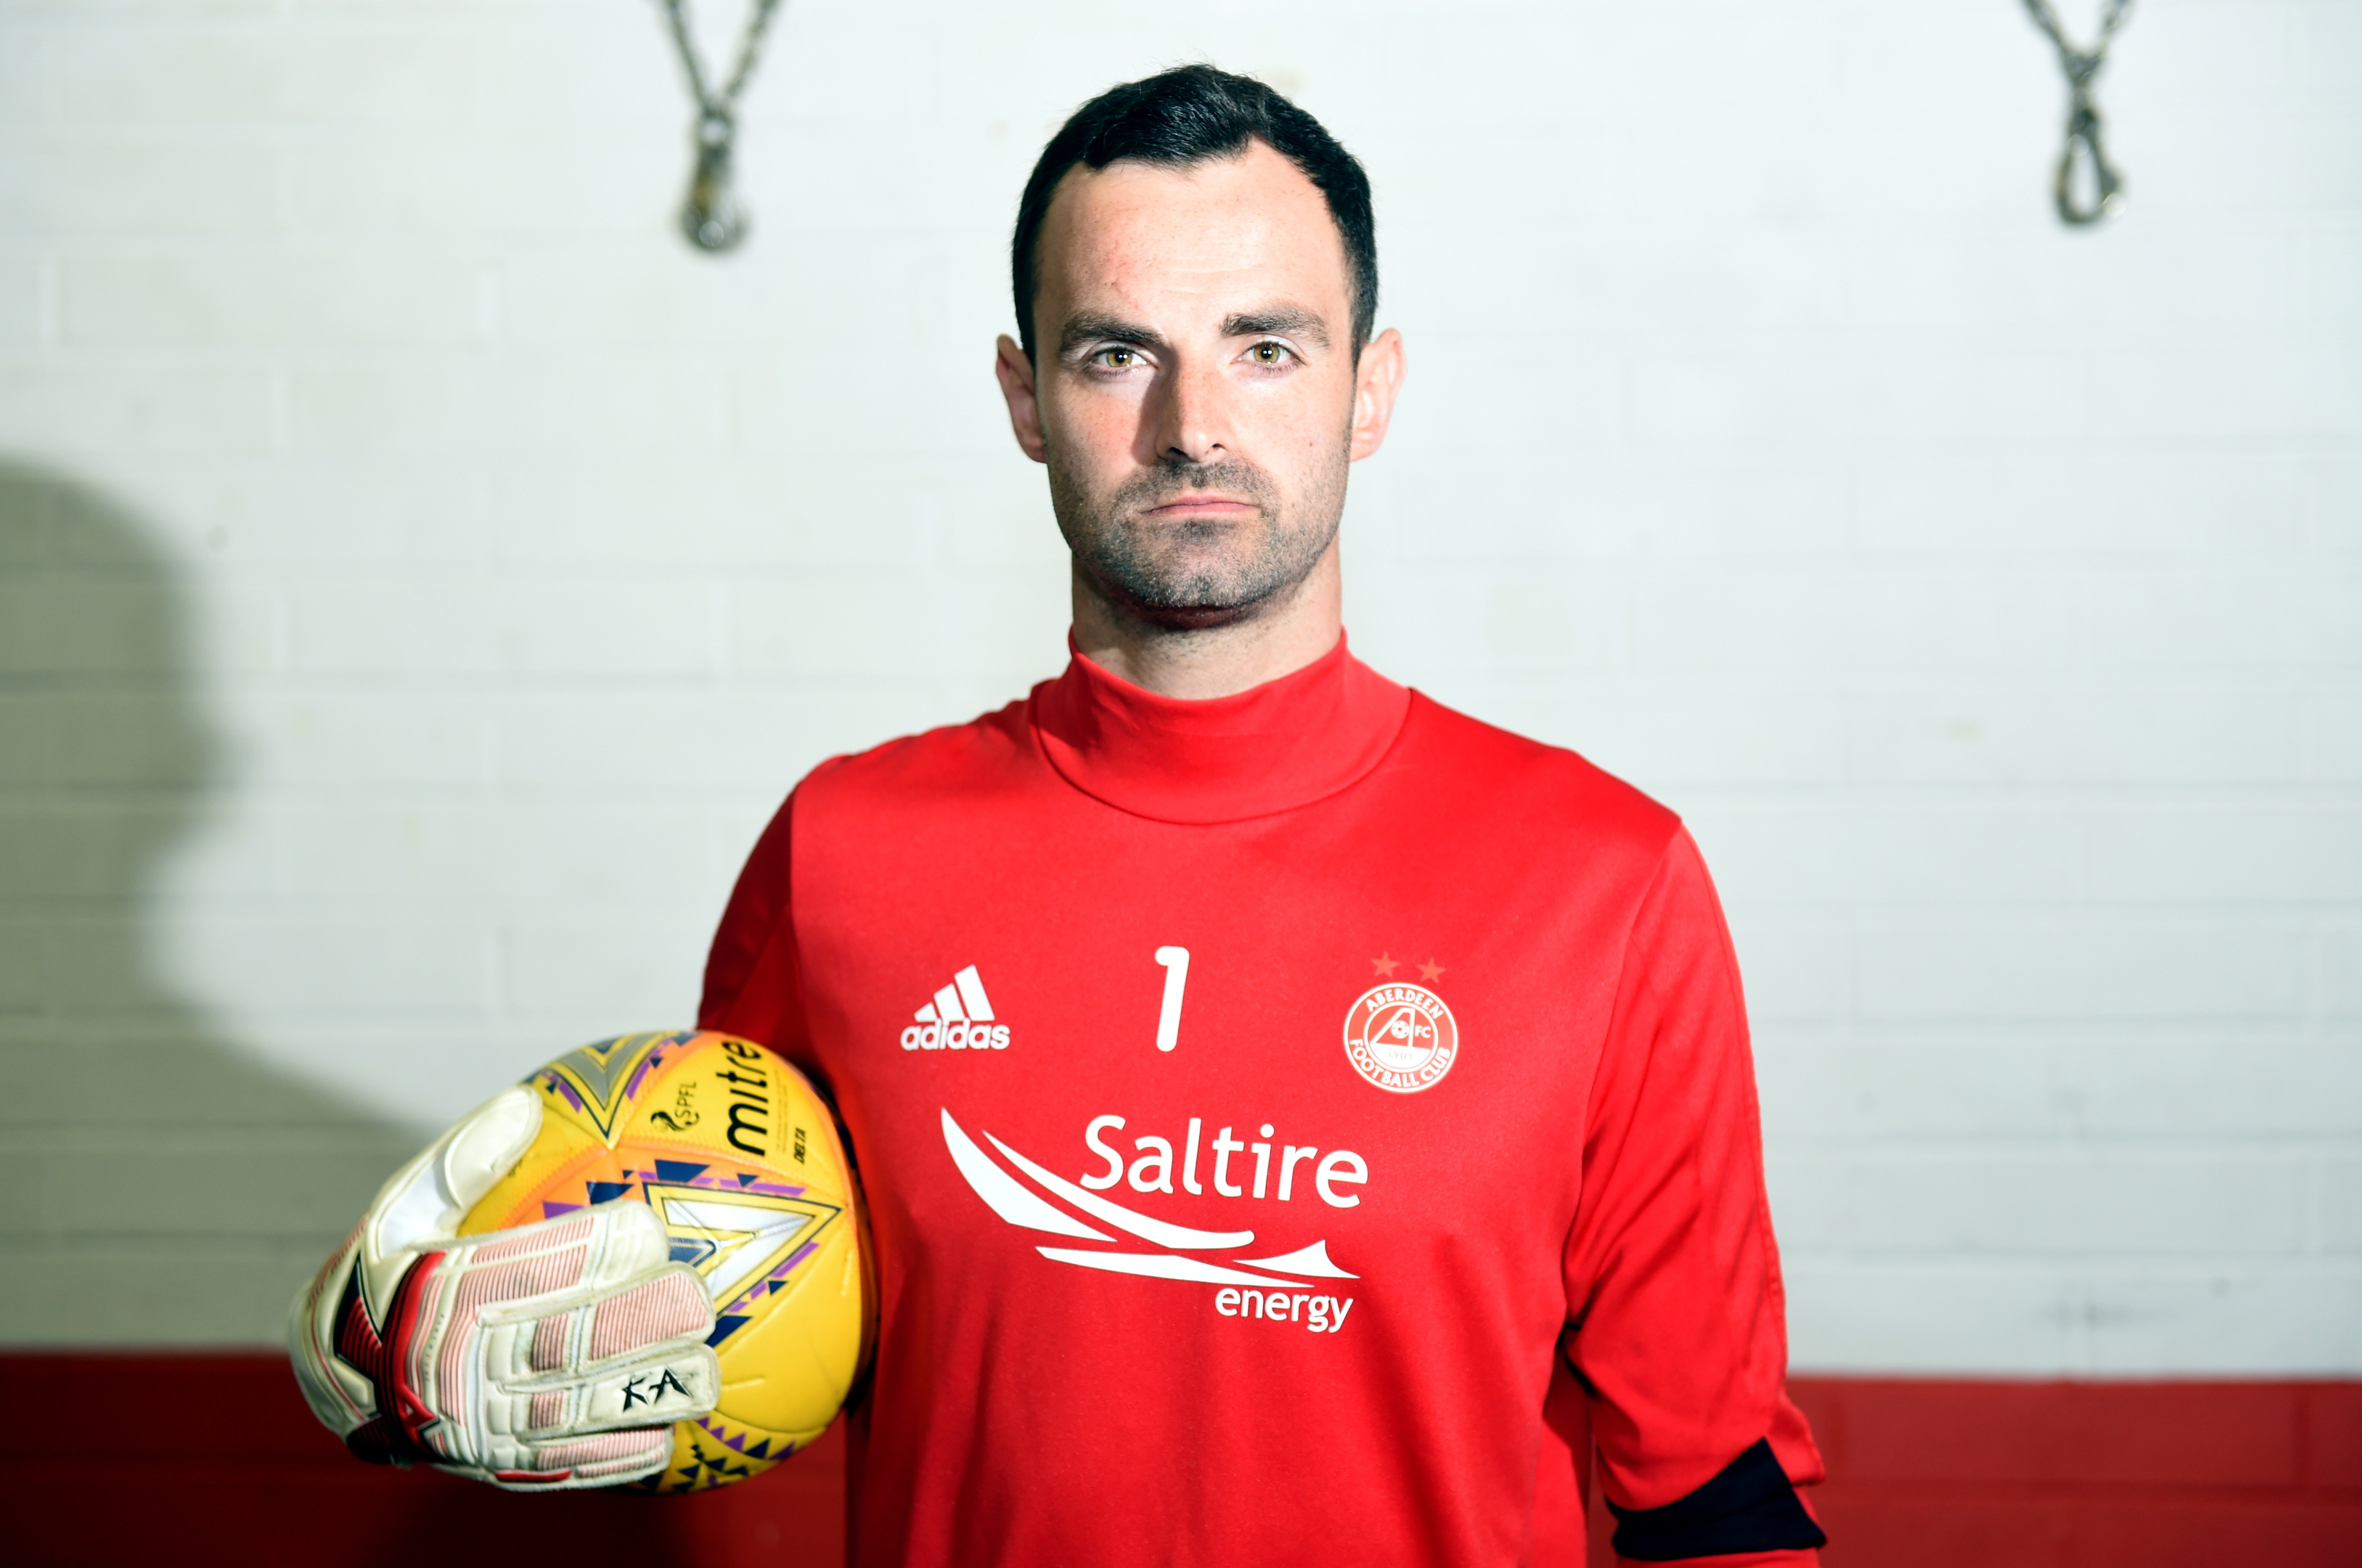 Aberdeen Football Club goalkeeper Joe Lewis. Picture by Darrell Benns